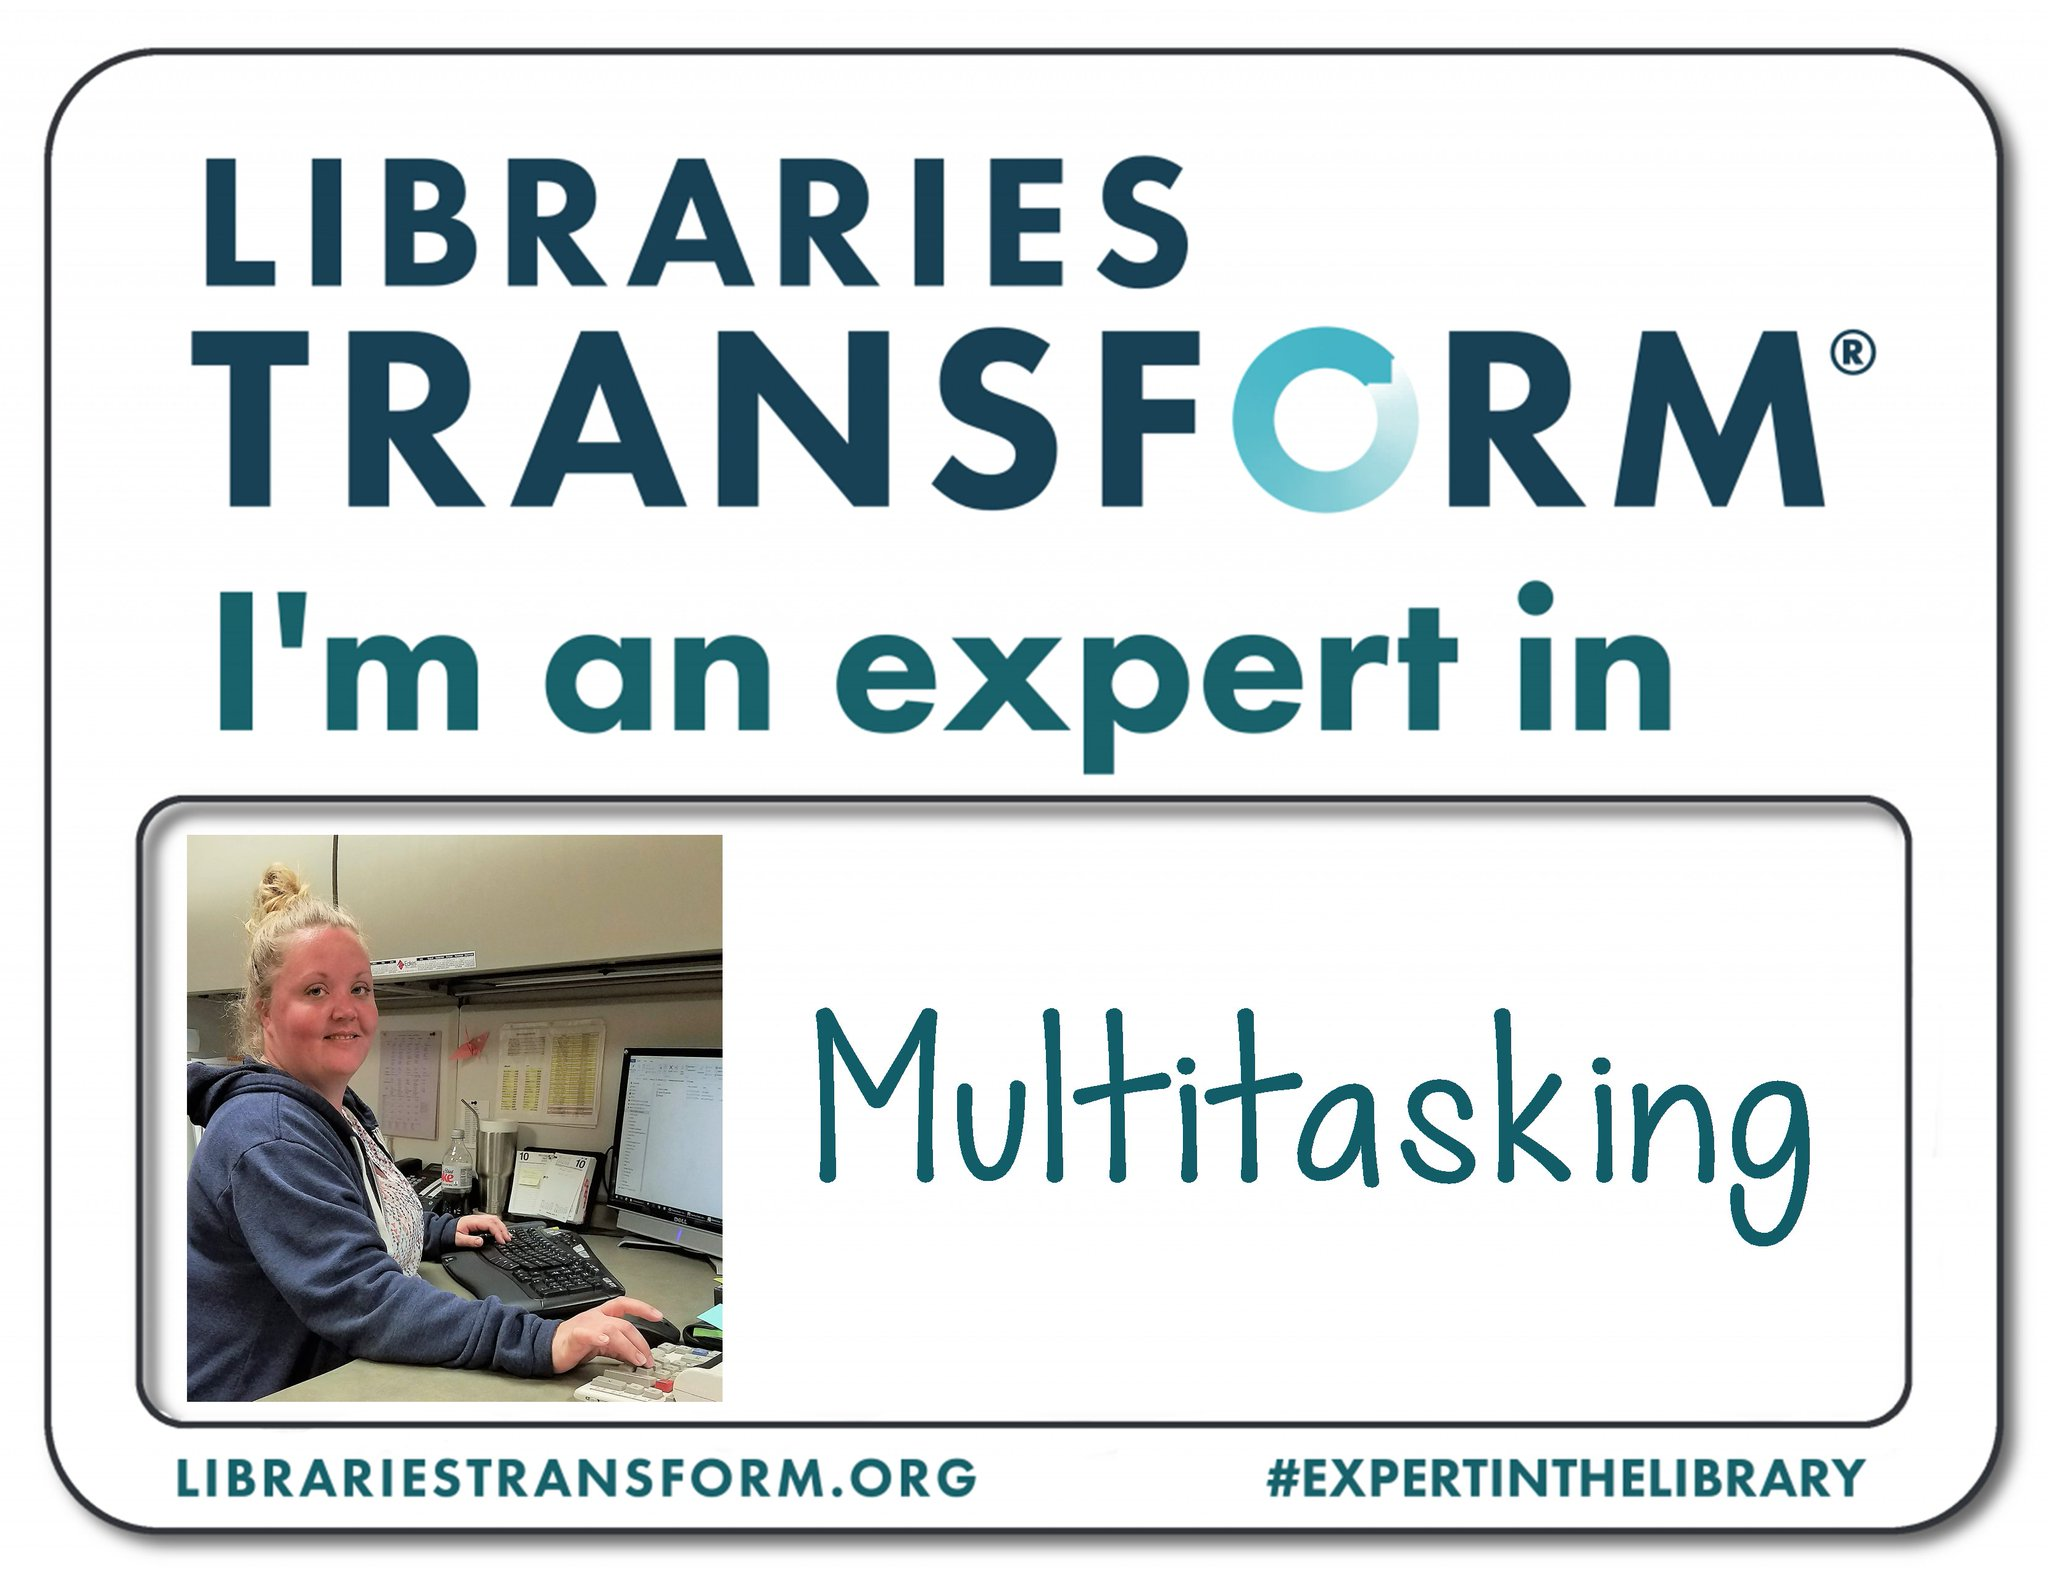 Celebrate #NationalLibraryWeek with us! Meet Stephanie, an #ExpertInTheLibrary at KPL. https://t.co/2pnJV0zZ2j